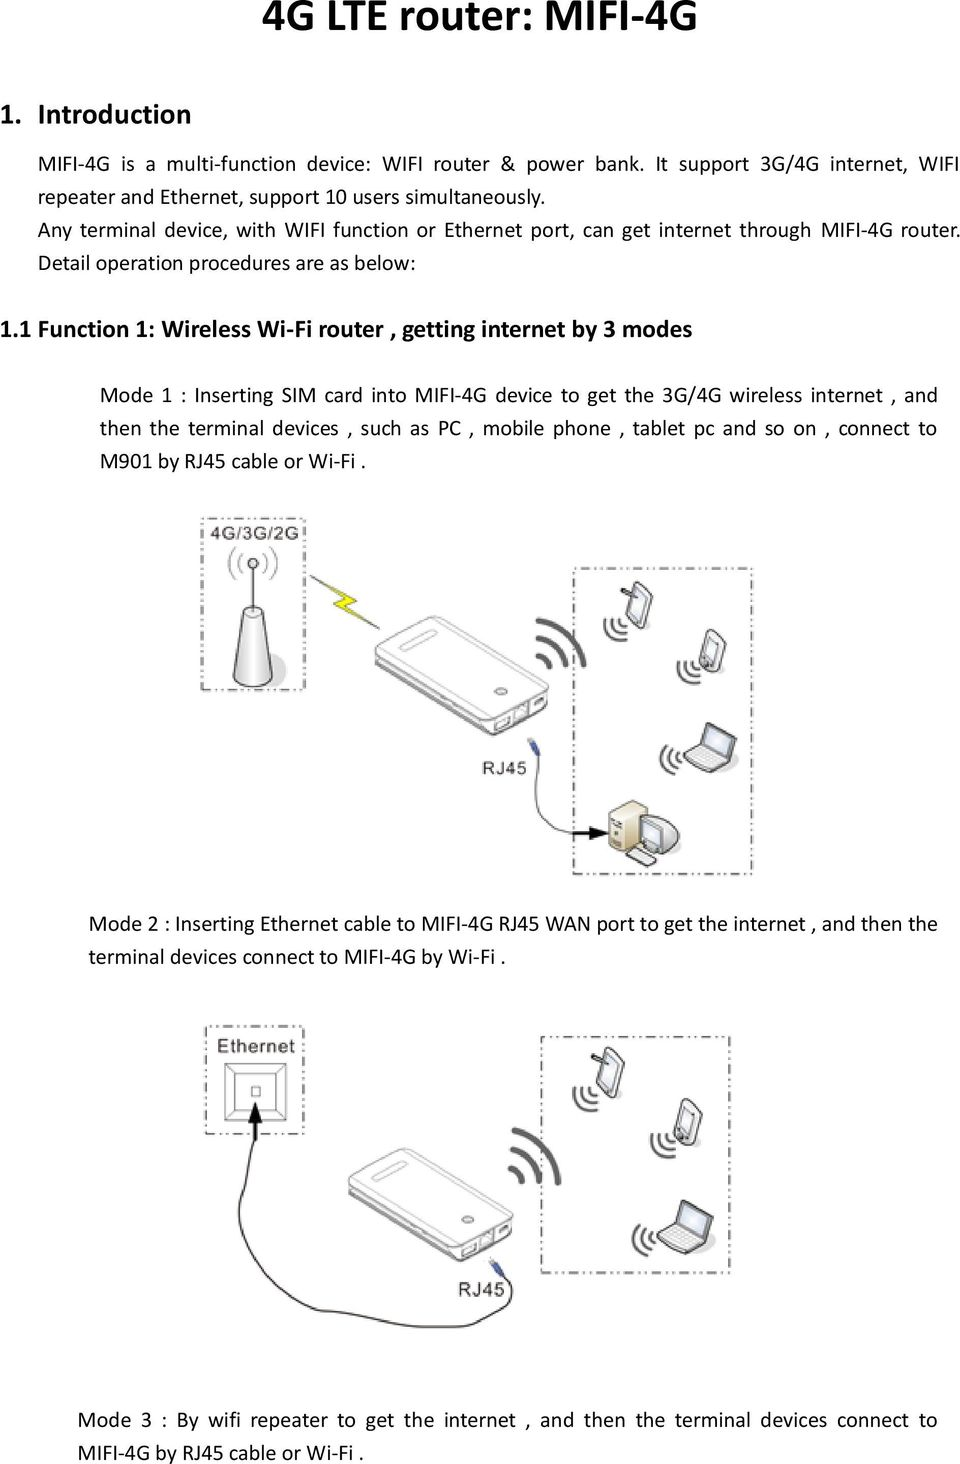 1 Function 1: Wireless Wi-Fi router, getting internet by 3 modes Mode 1 : Inserting SIM card into MIFI-4G device to get the 3G/4G wireless internet, and then the terminal devices, such as PC, mobile